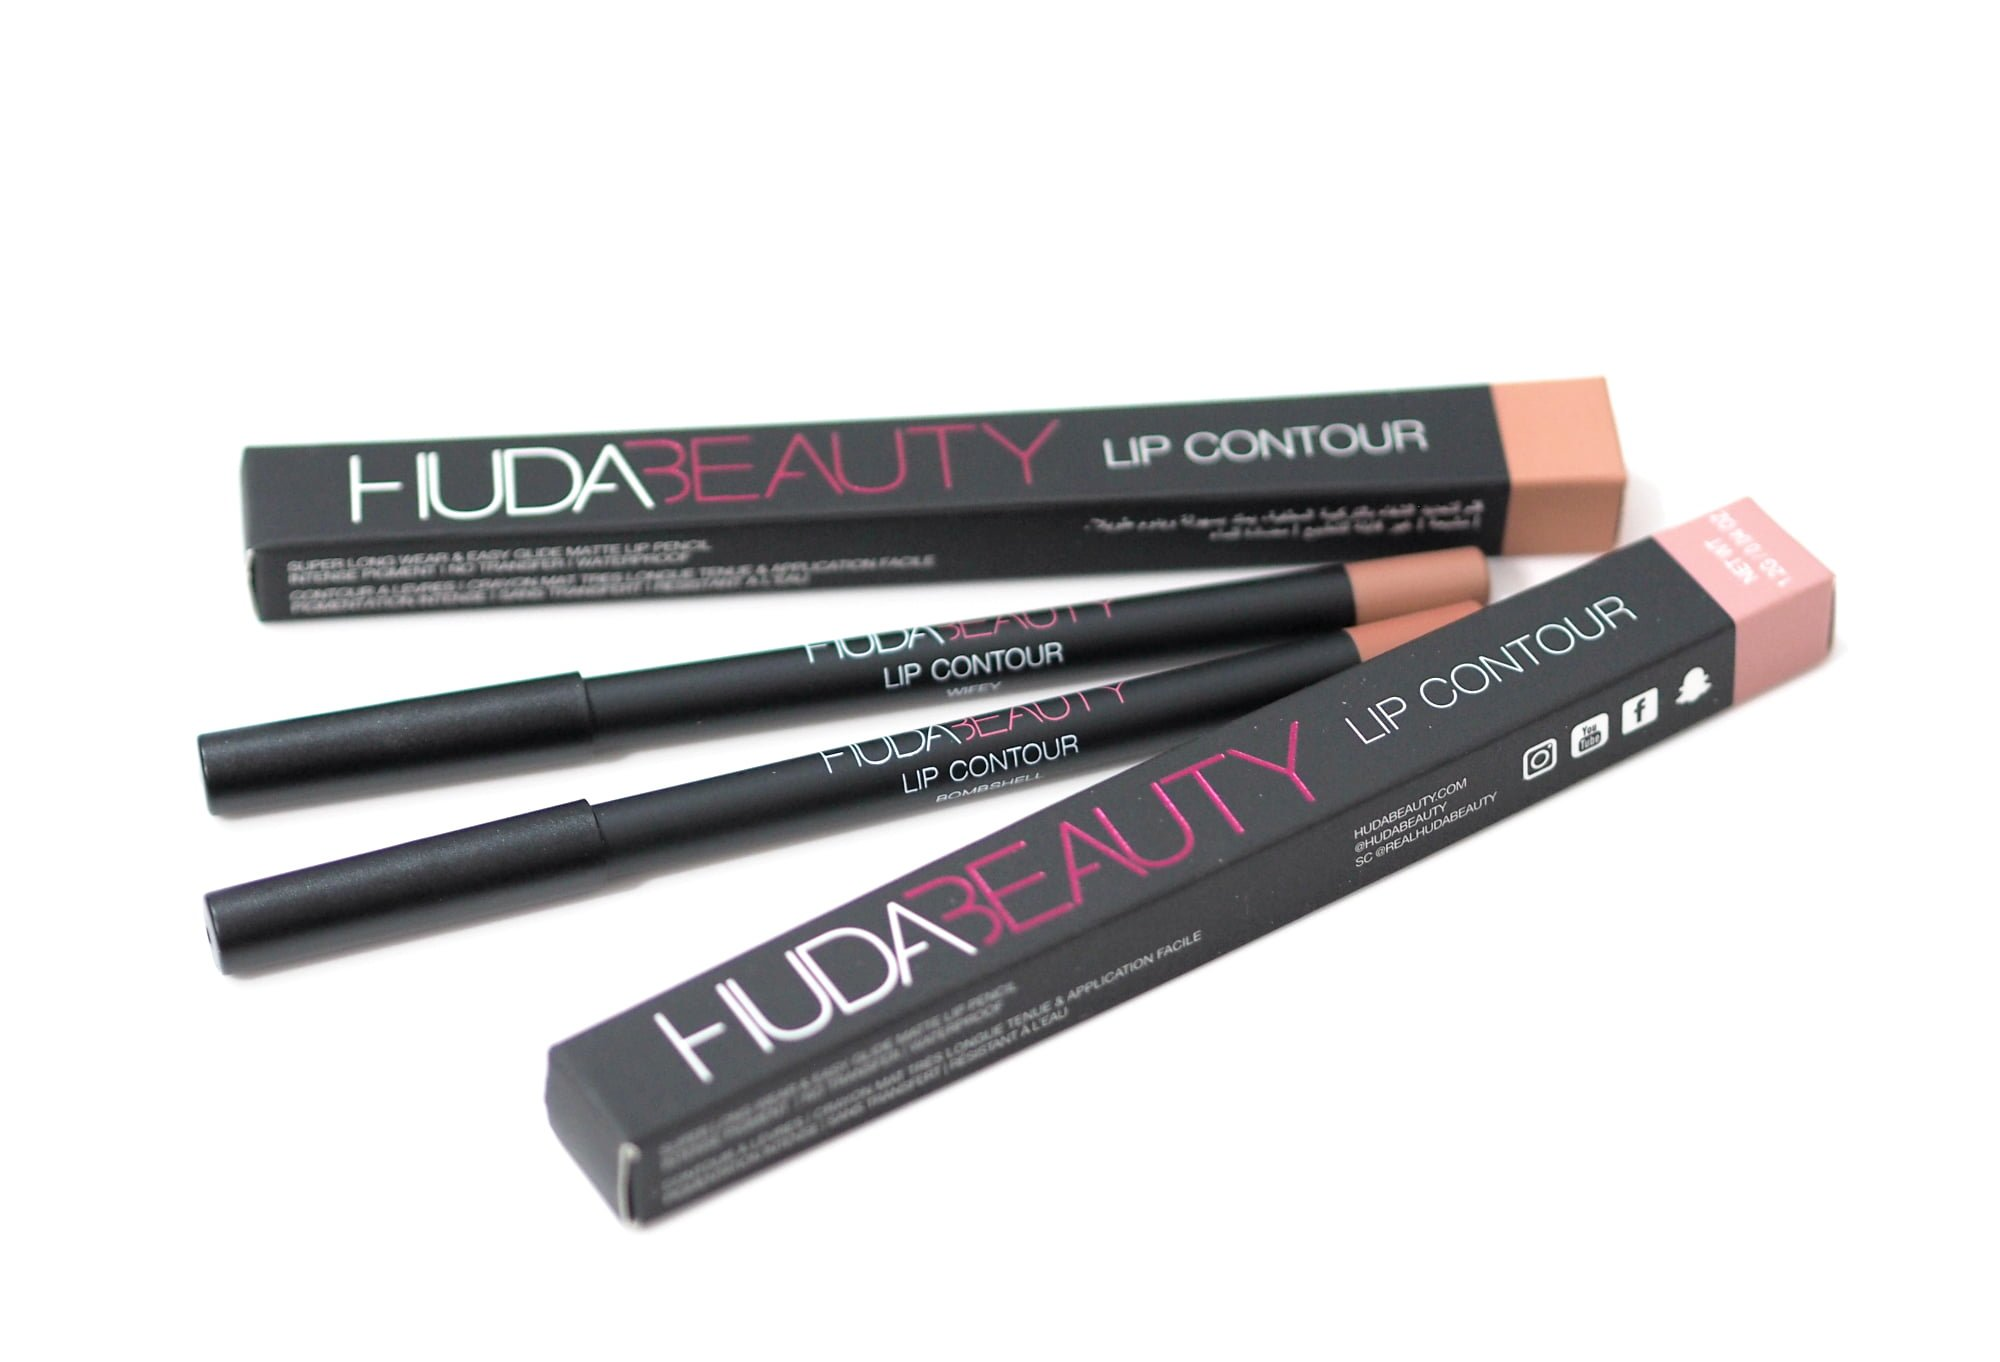 Huda Beauty Lip Contour Lip Liners in Wifey and Bombshell Review and Swatches